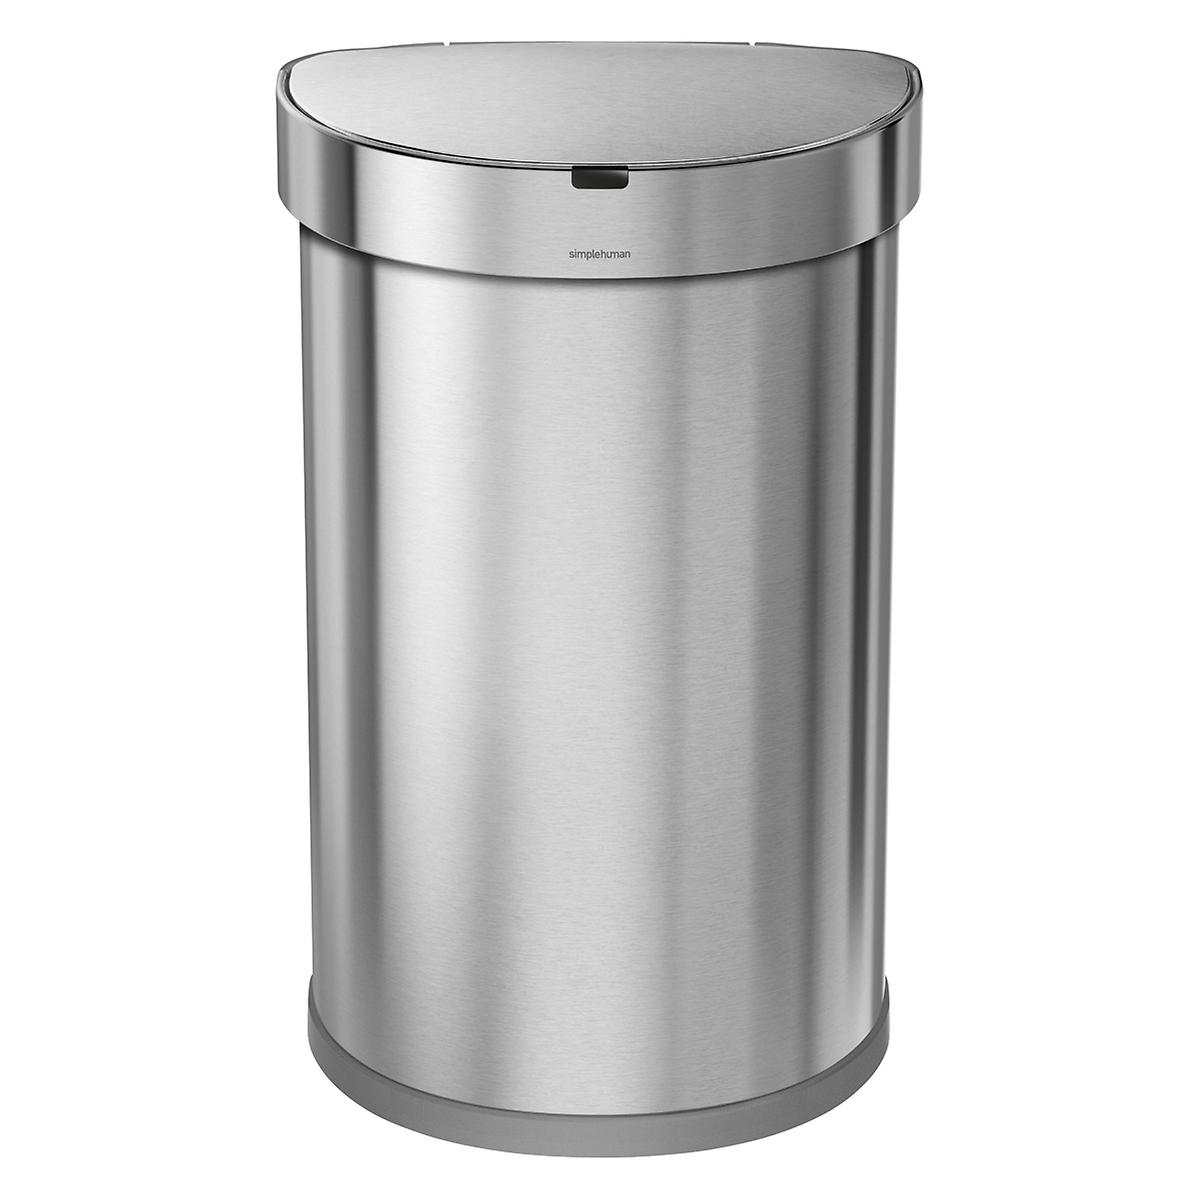 simplehuman Stainless Steel 12 gal. Semi-Round Sensor Trash Can ...